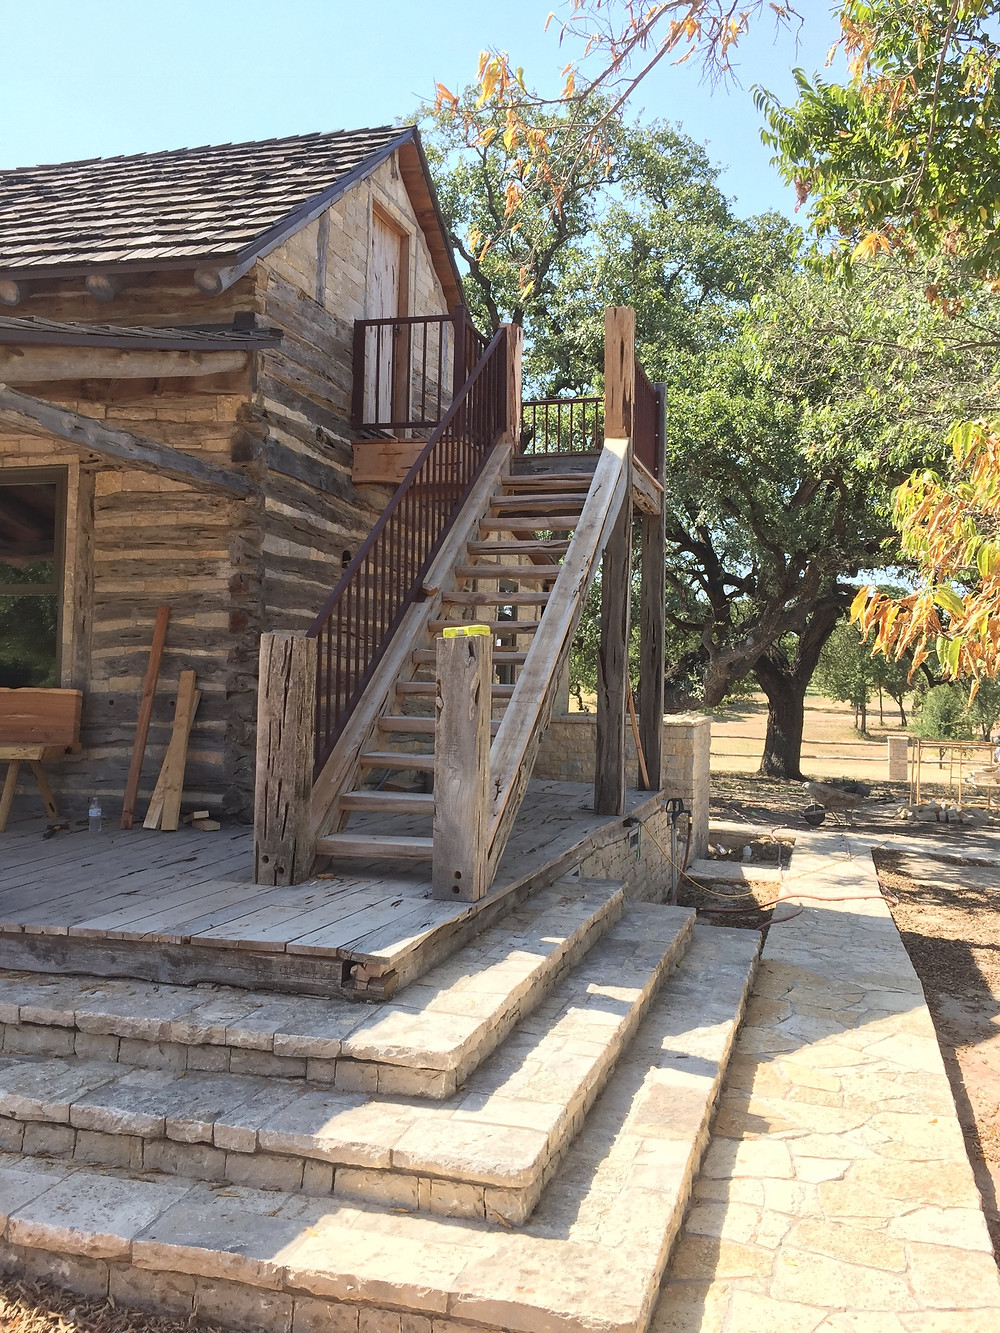 In the middle of installing custom hand railings on a restoration project in Granbury Texas in the Comanche Peak area. Hand railings on an old antique wood home.